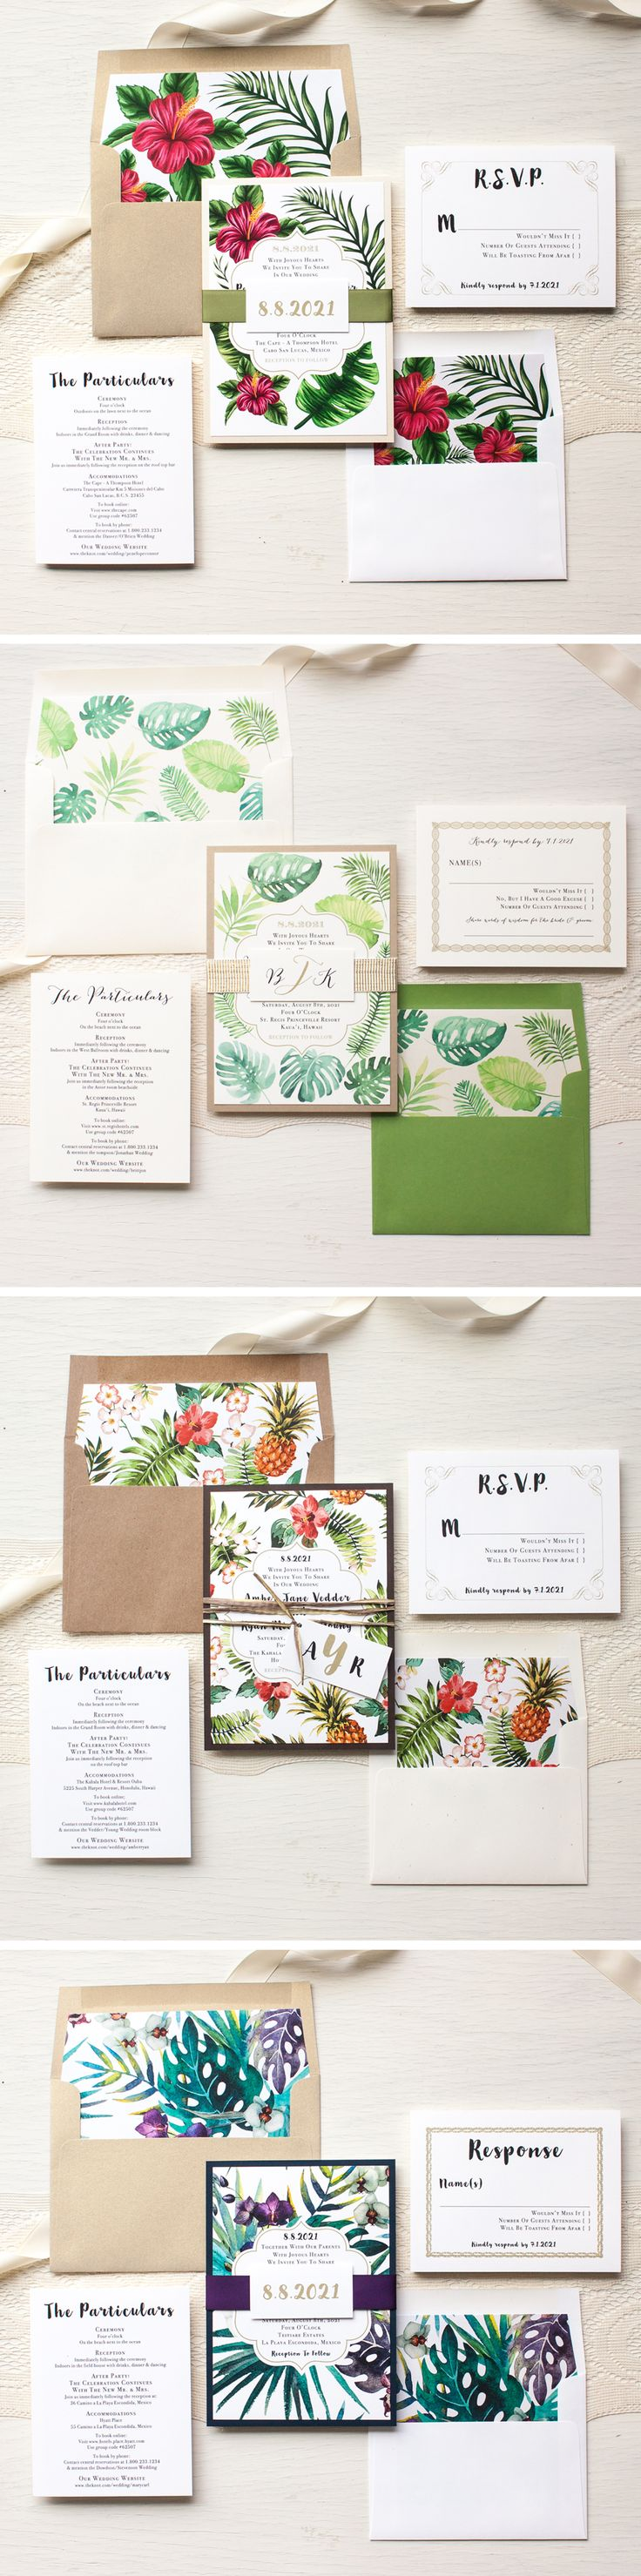 Aloha! Tropical leaf, floral and pineapple wedding invitations. Beach Ready.